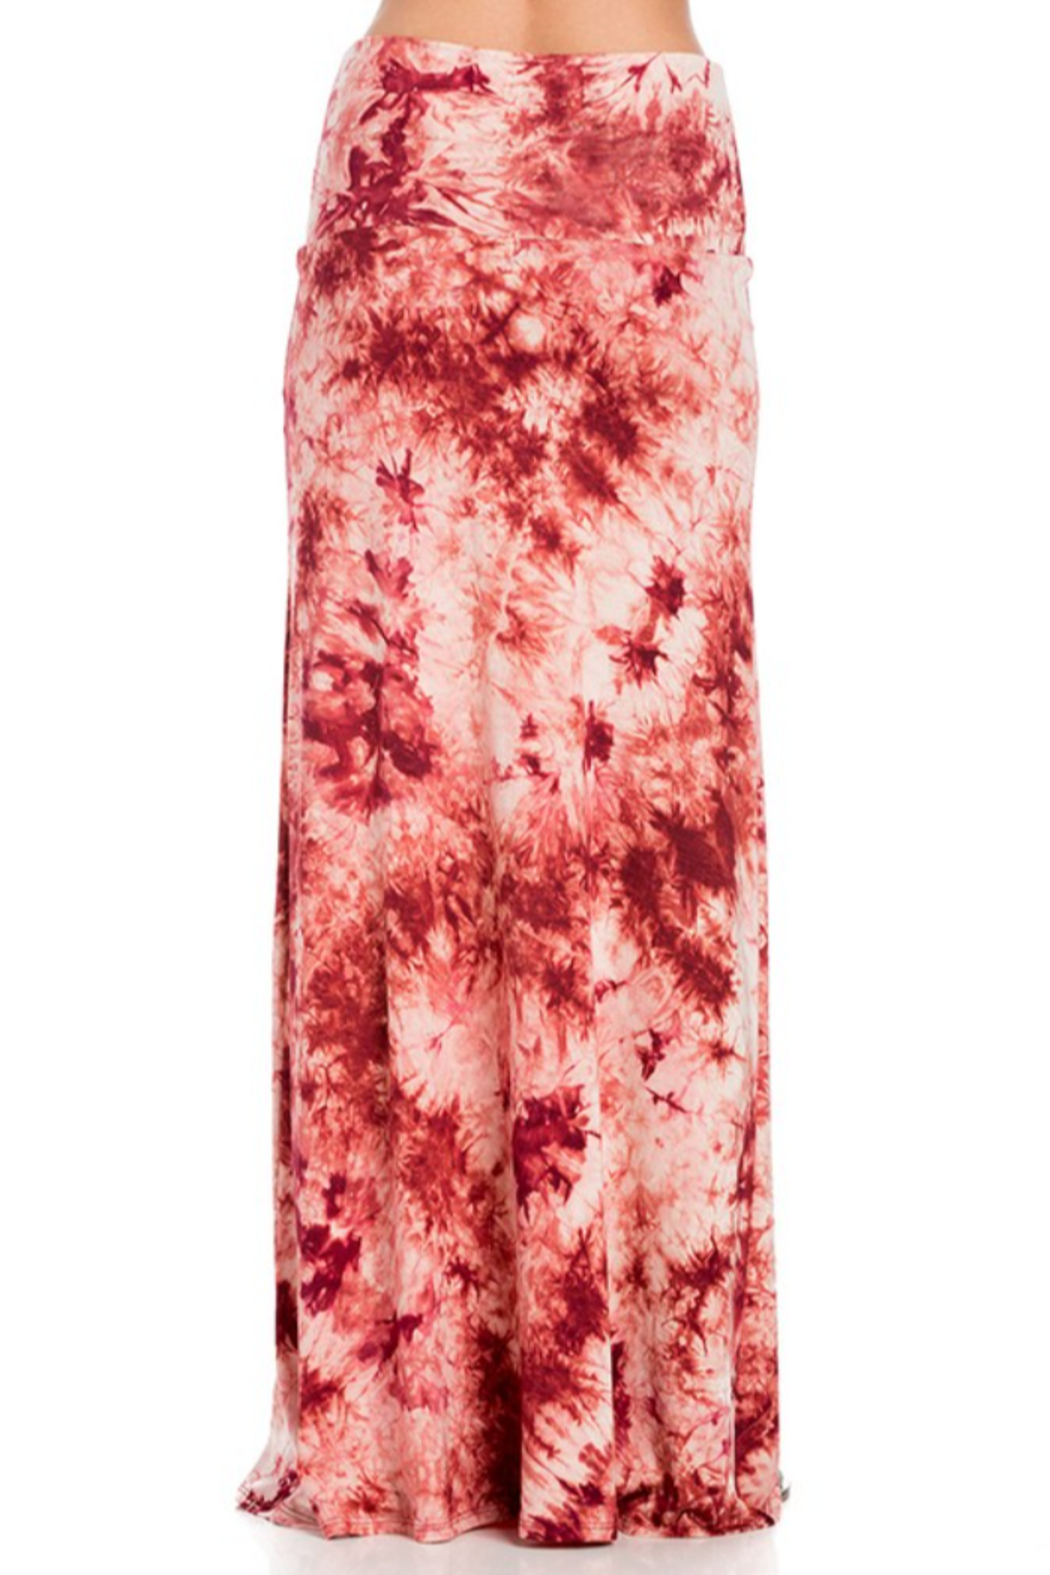 Azules Tie-Dye Maxi skirt with foldover waist - Front Full Image